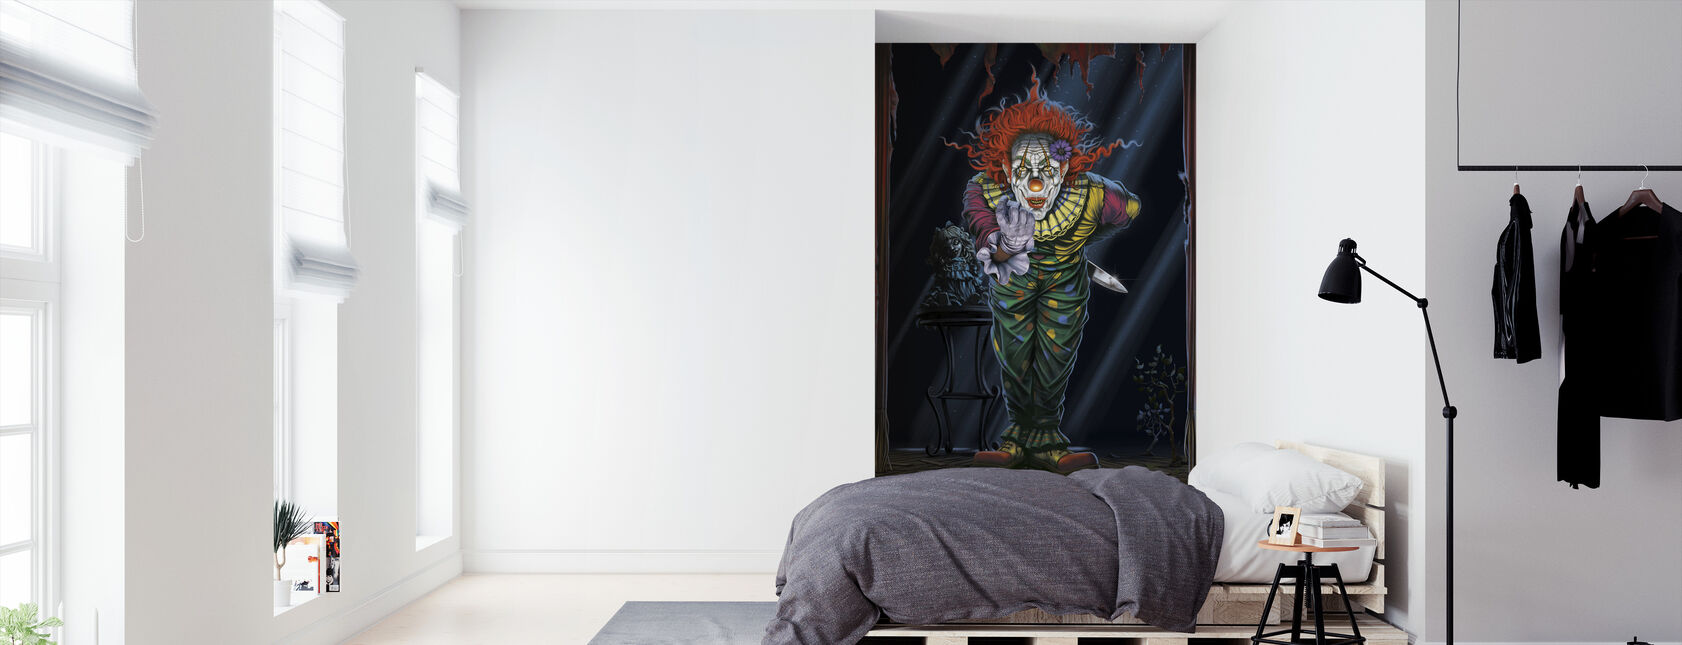 Surprise Clown - Wallpaper - Bedroom